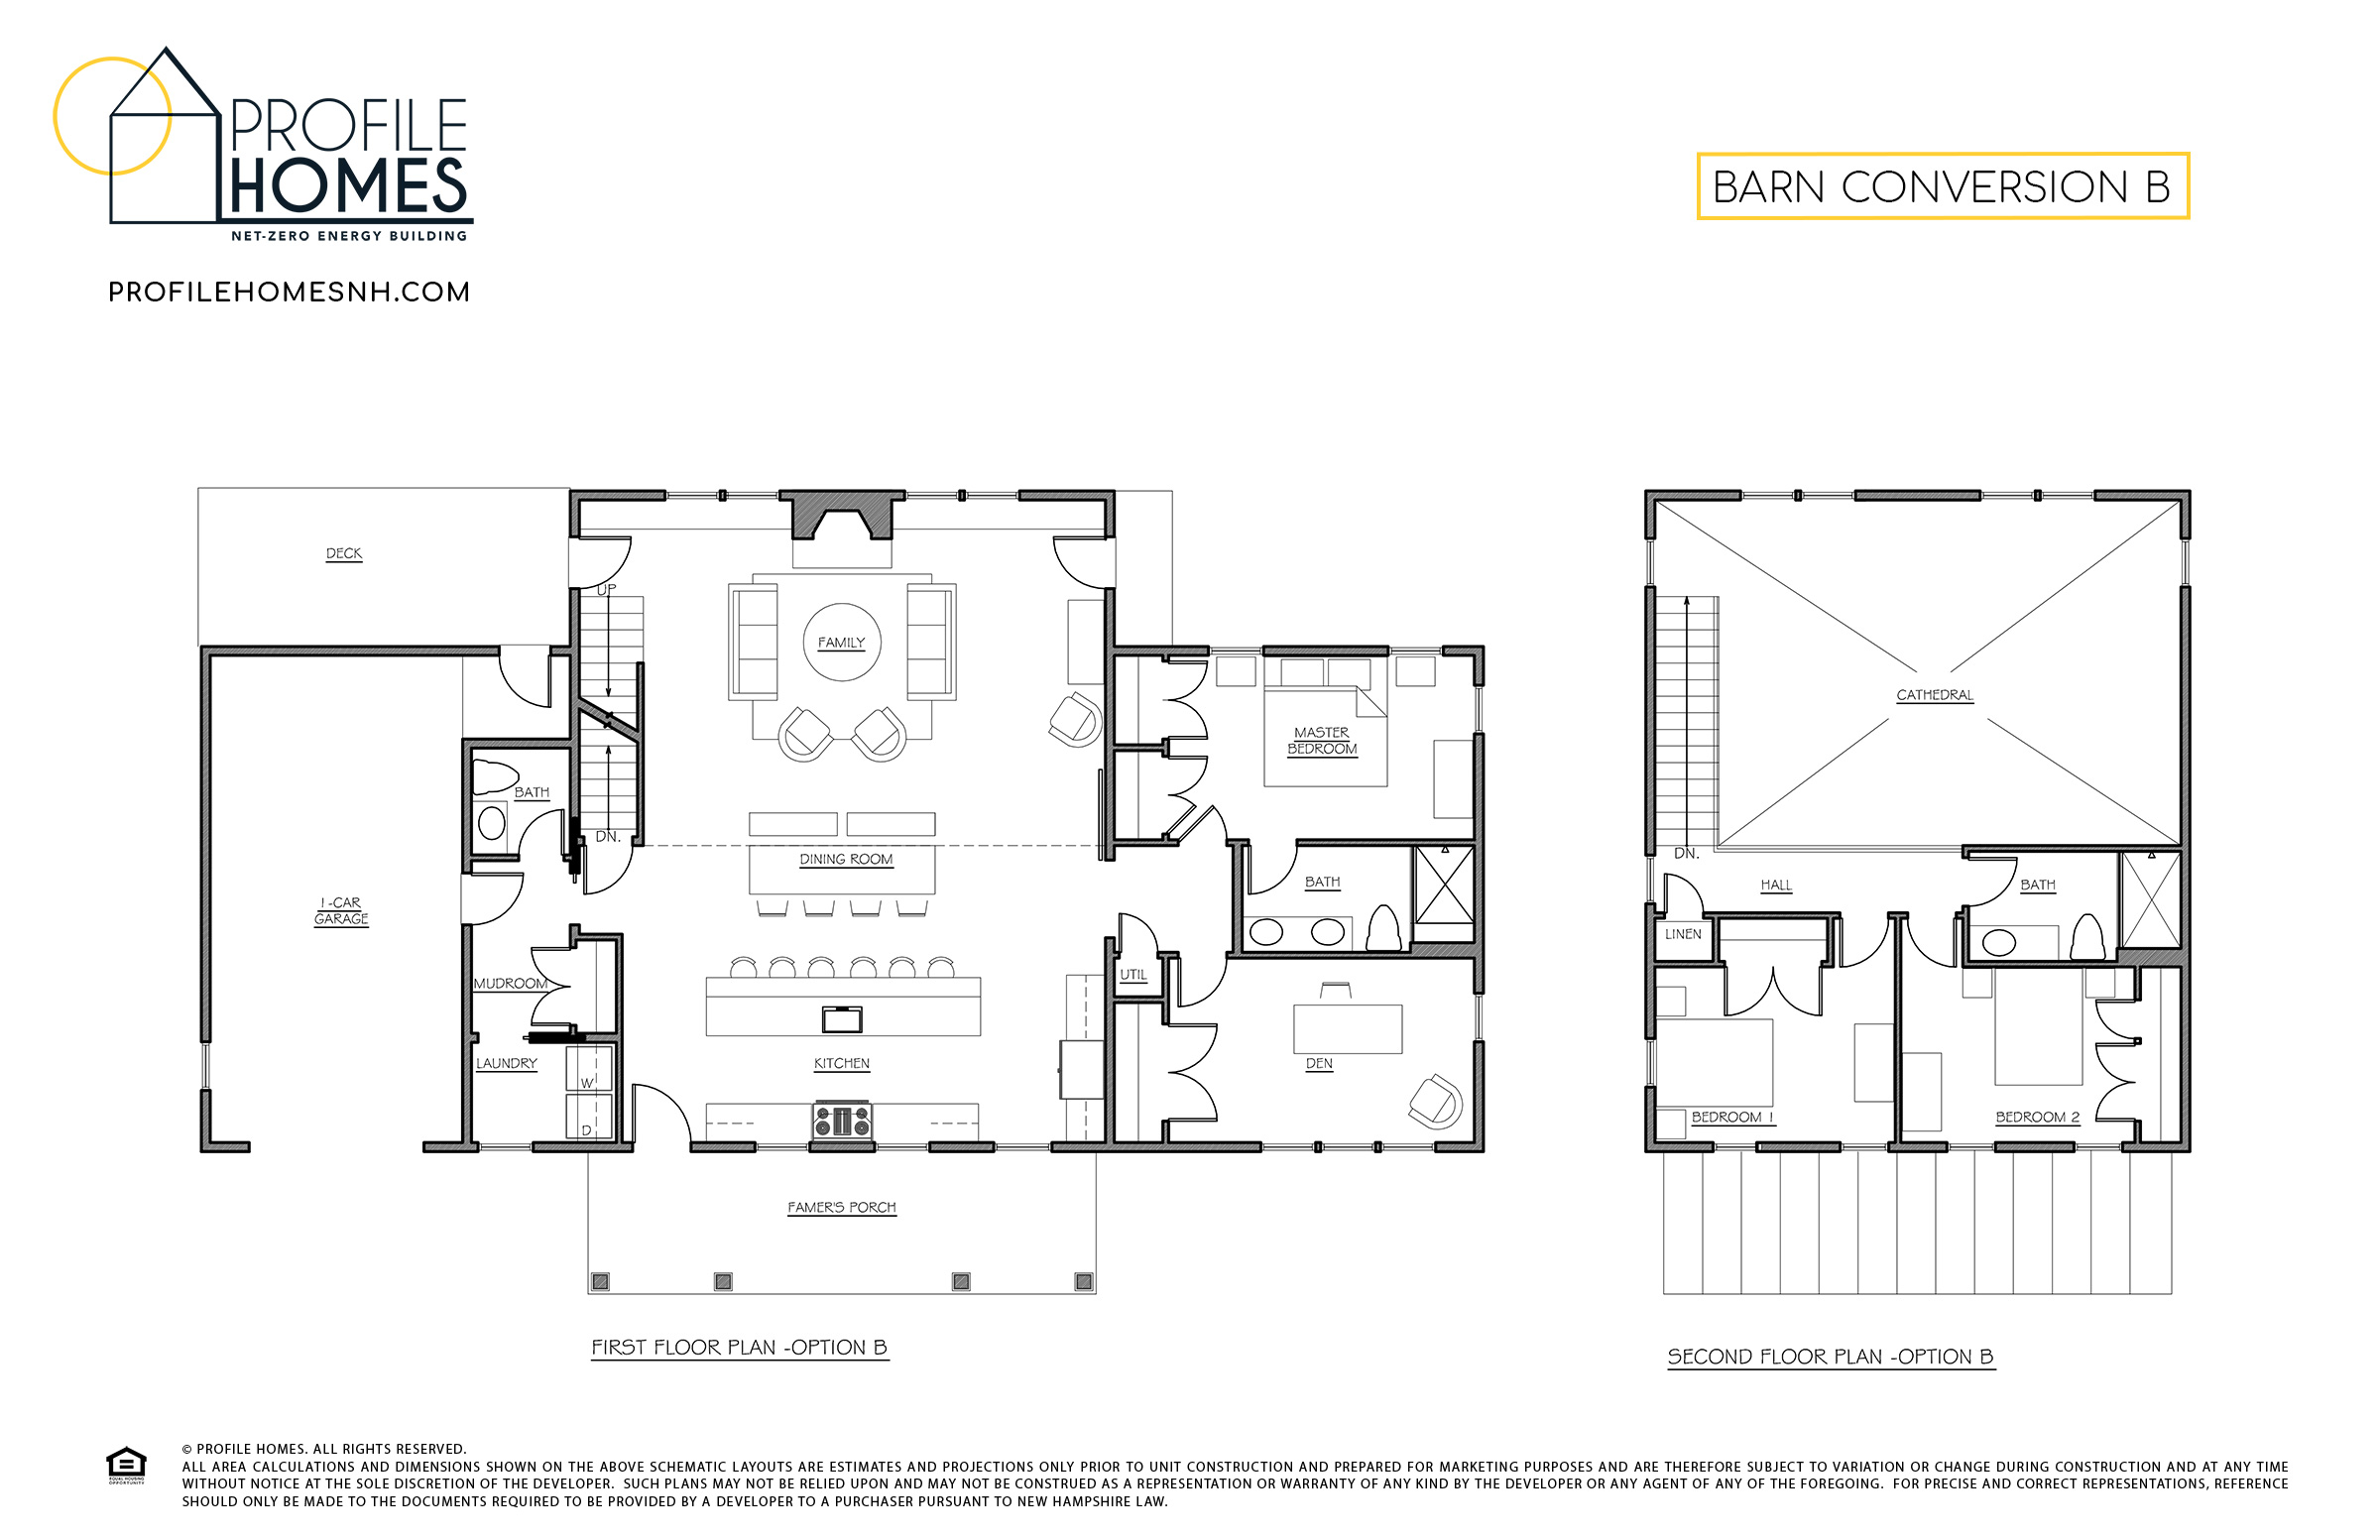 Profile Homes Floorplans Barn Conversion B © 2018 Profile Homes